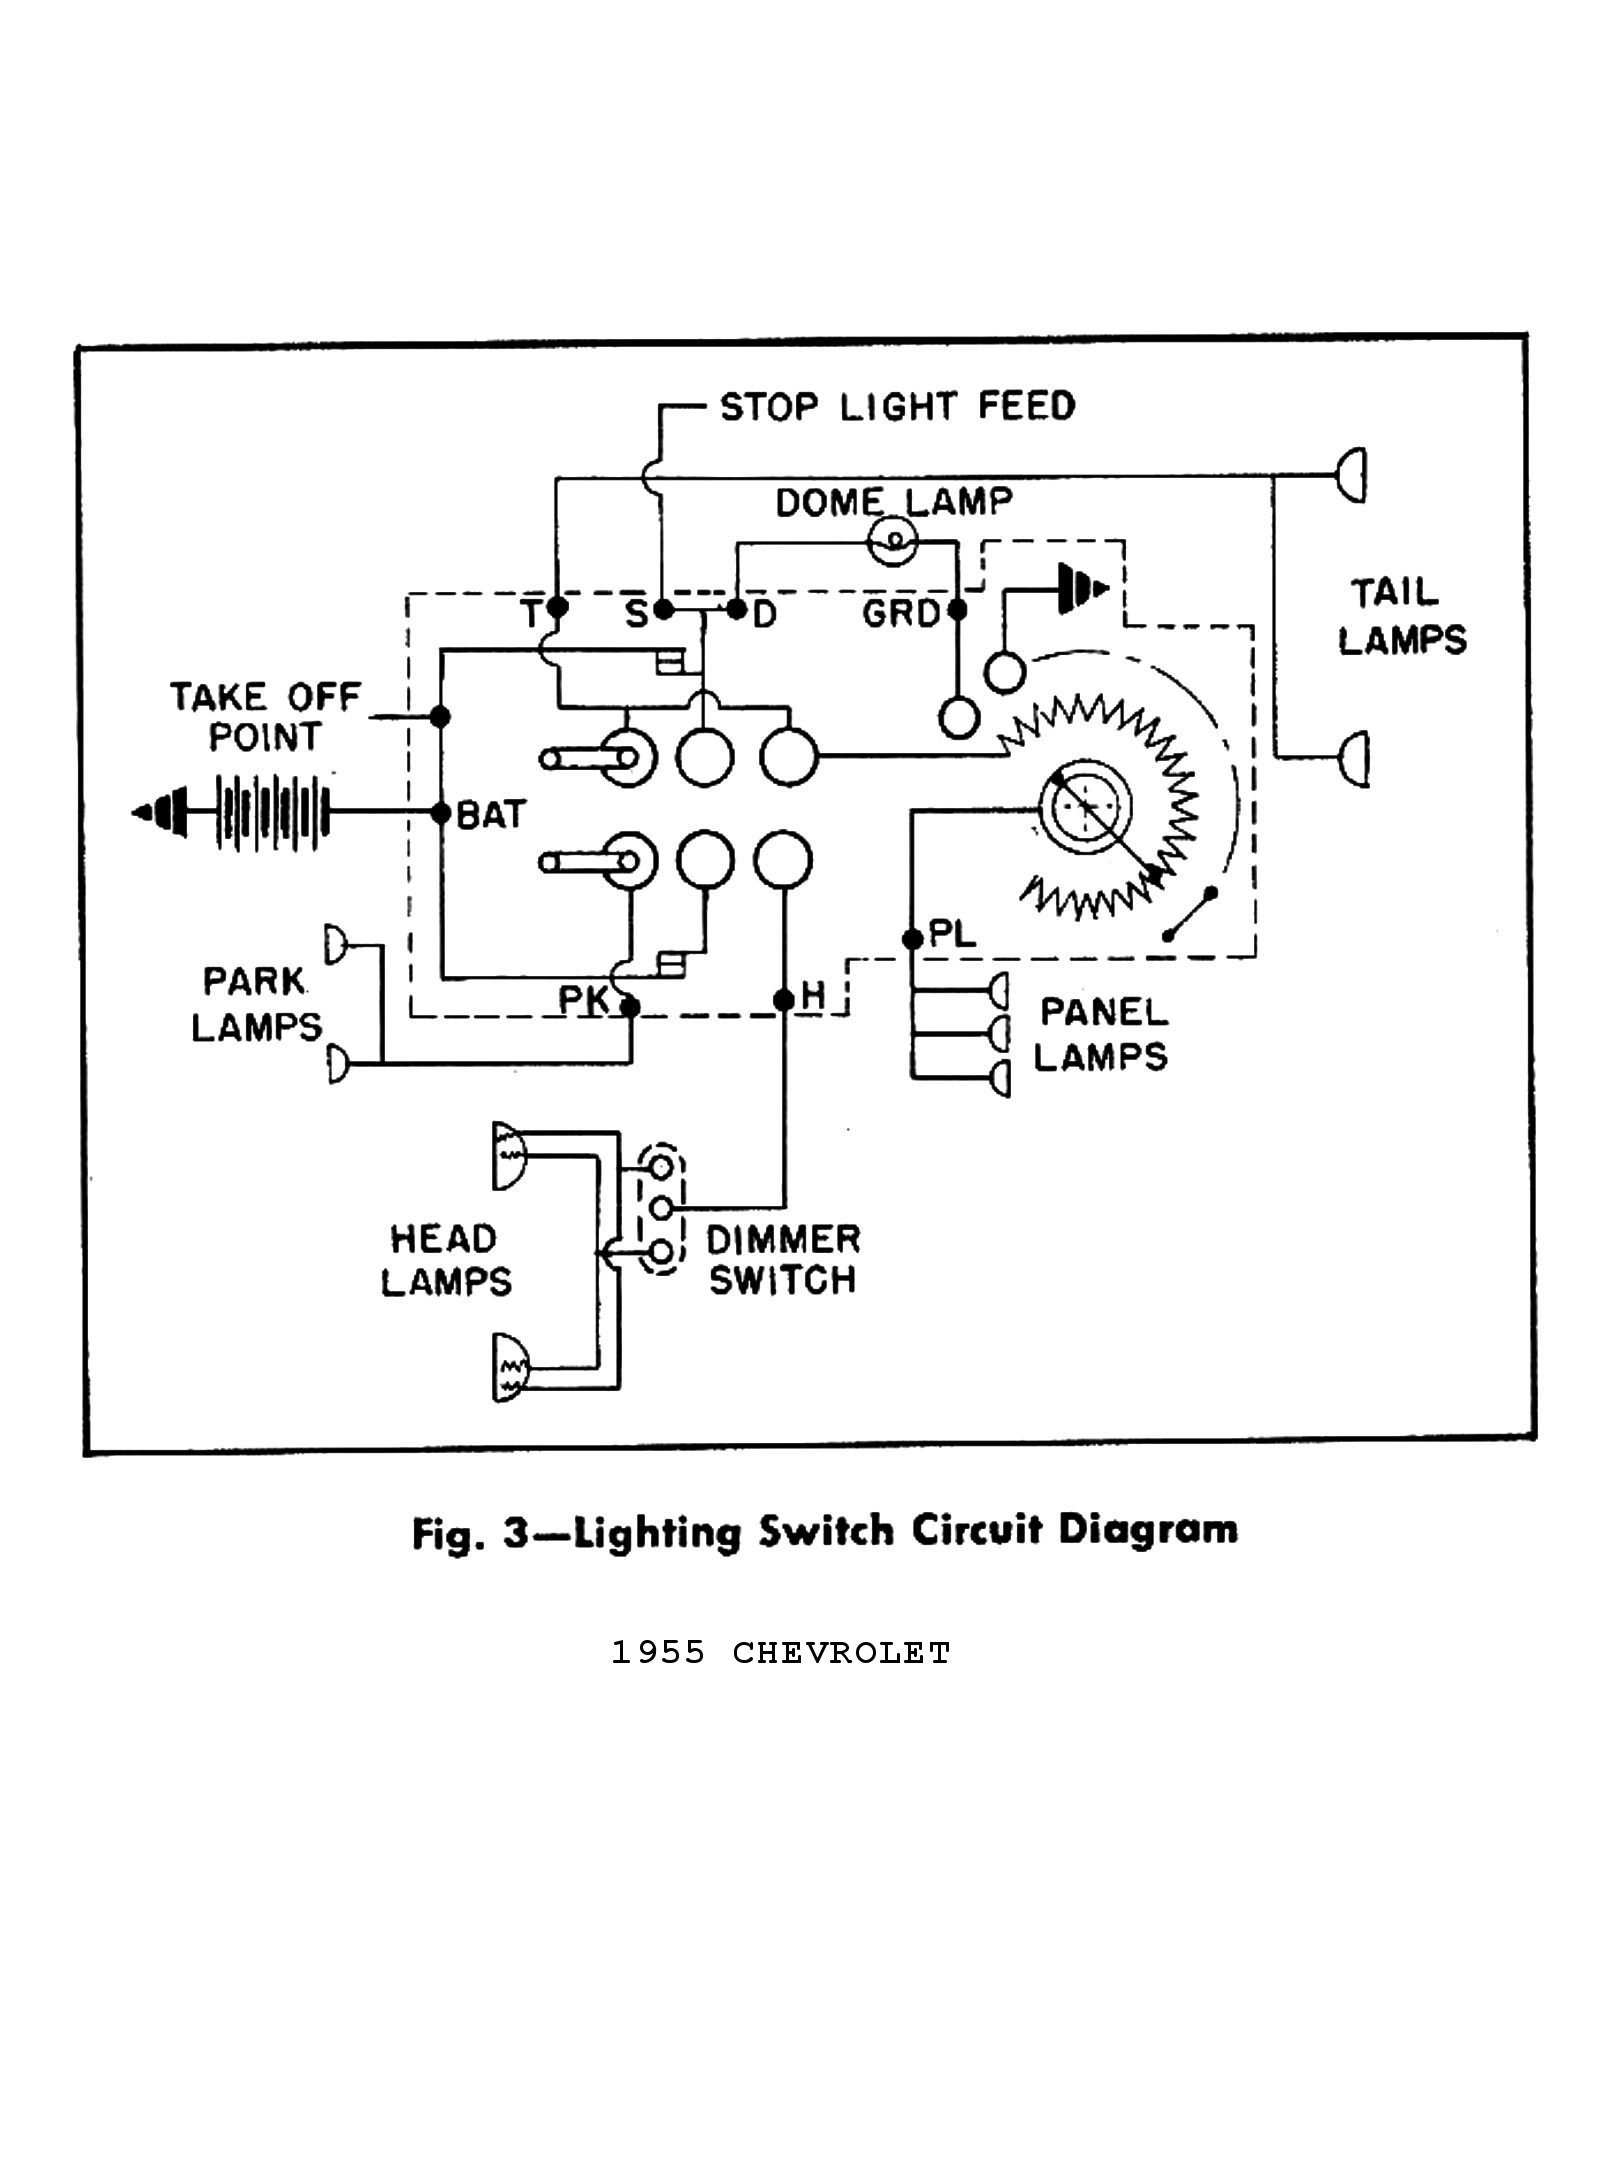 1978 Chevy Truck Wiring Diagram Headlights Data Schema 350 Alternator As Well 1994 For 1957 Just 1975 1950